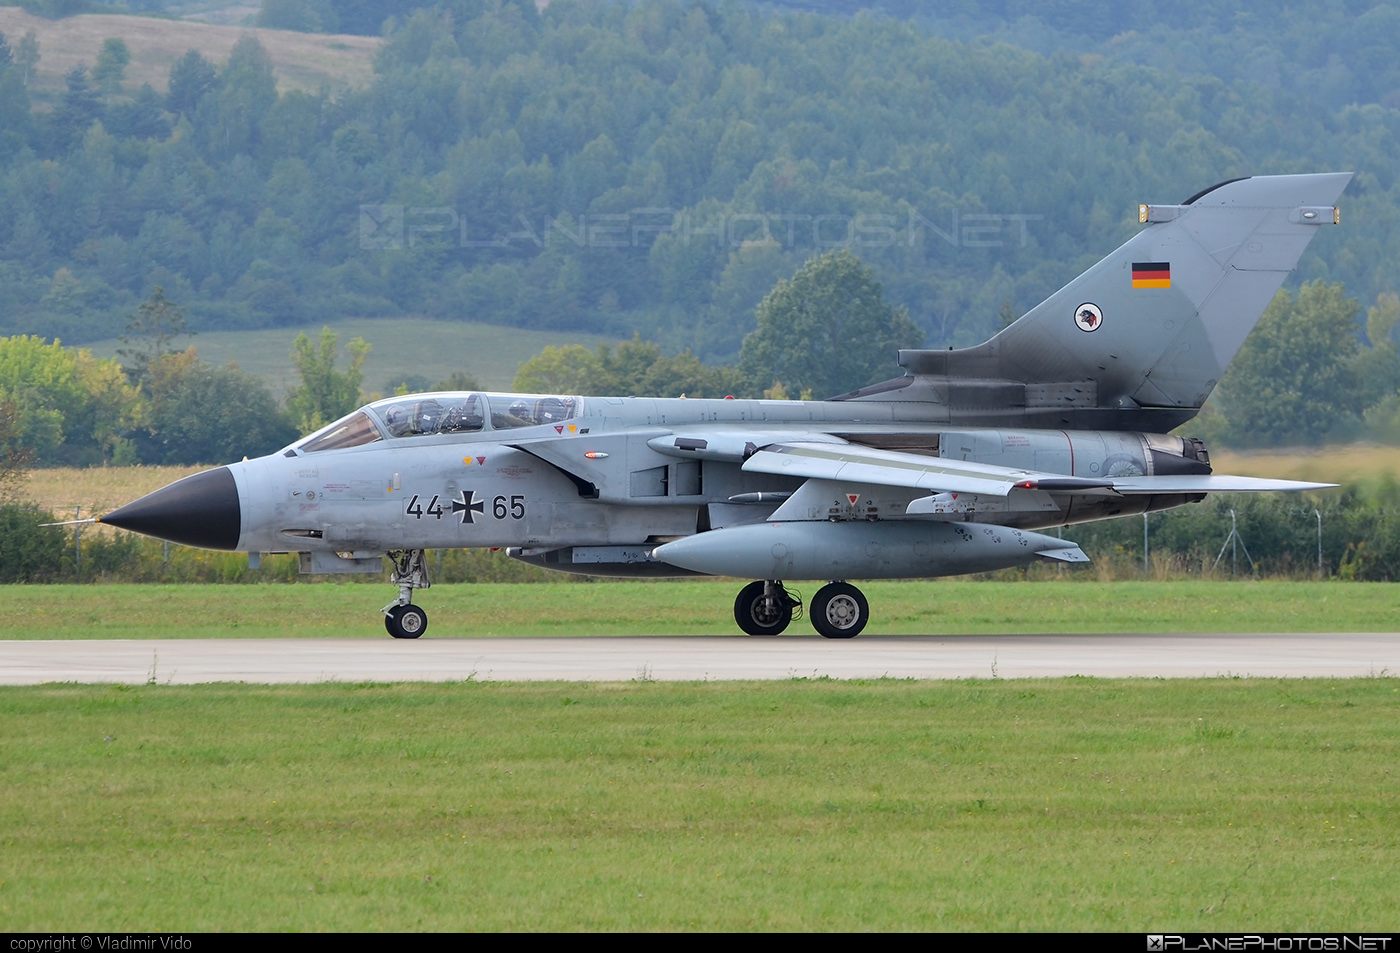 Panavia Tornado IDS - 44+65 operated by Luftwaffe (German Air Force) #panavia #panaviatornado #siaf2018 #tornadoids